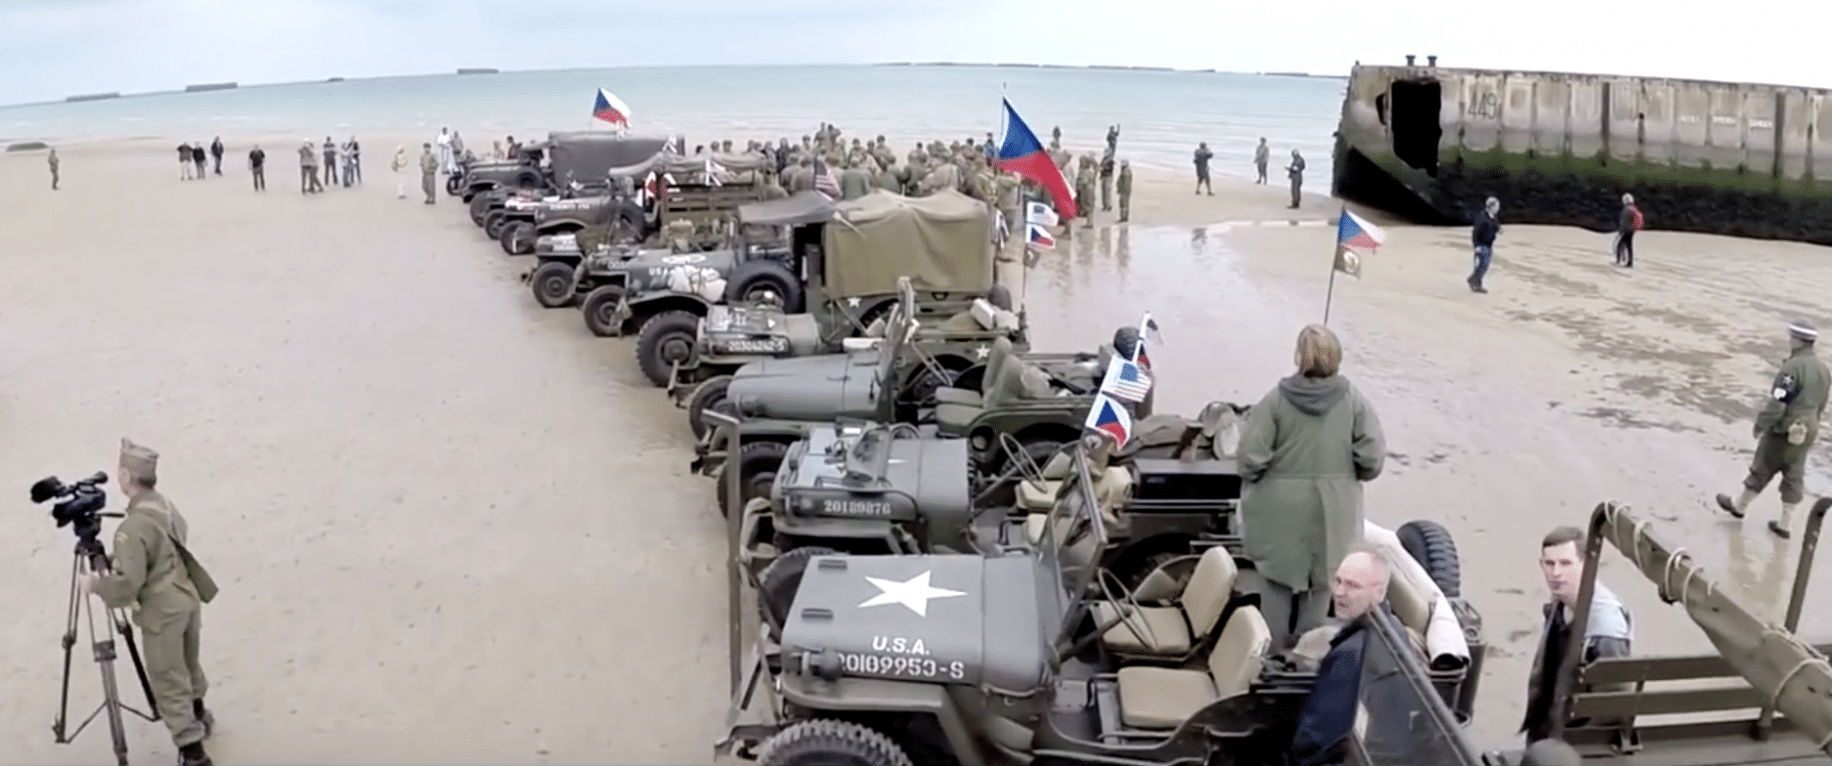 Check out this unreal drone footage of Normandy Beach on the 70th anniversary of D-Day   American Military News